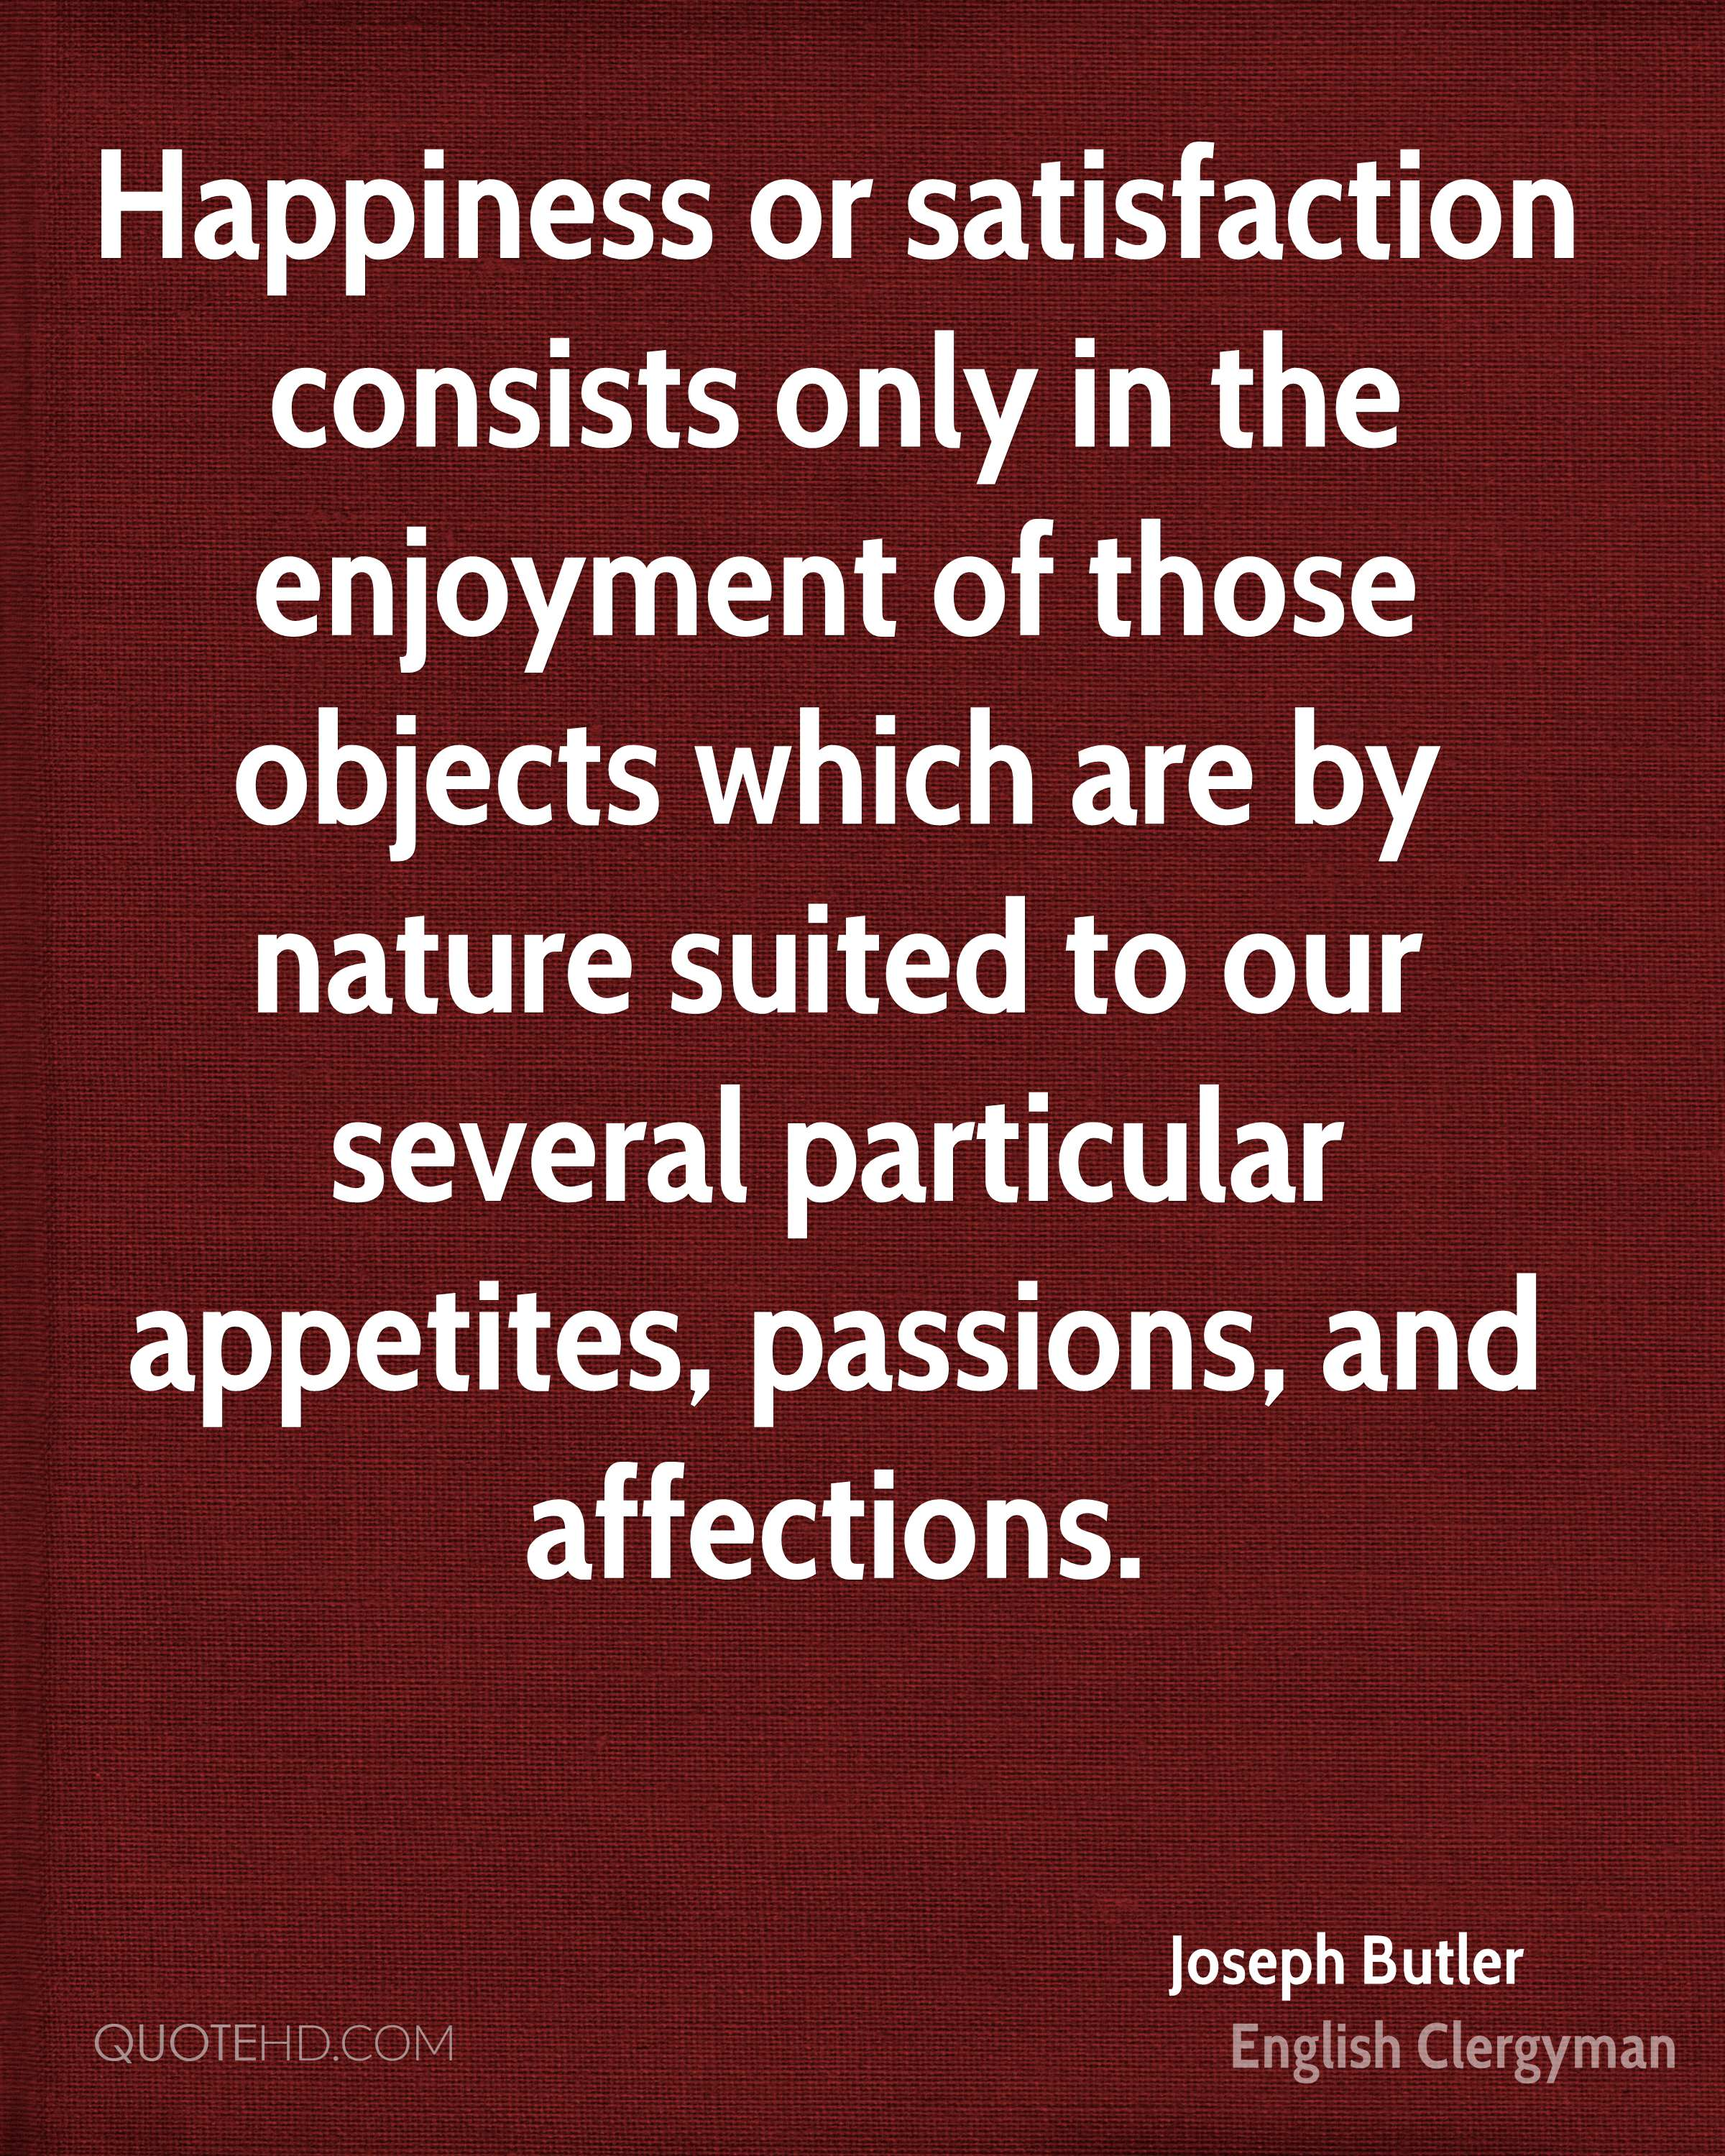 Happiness or satisfaction consists only in the enjoyment of those objects which are by nature suited to our several particular appetites, passions, and affections.